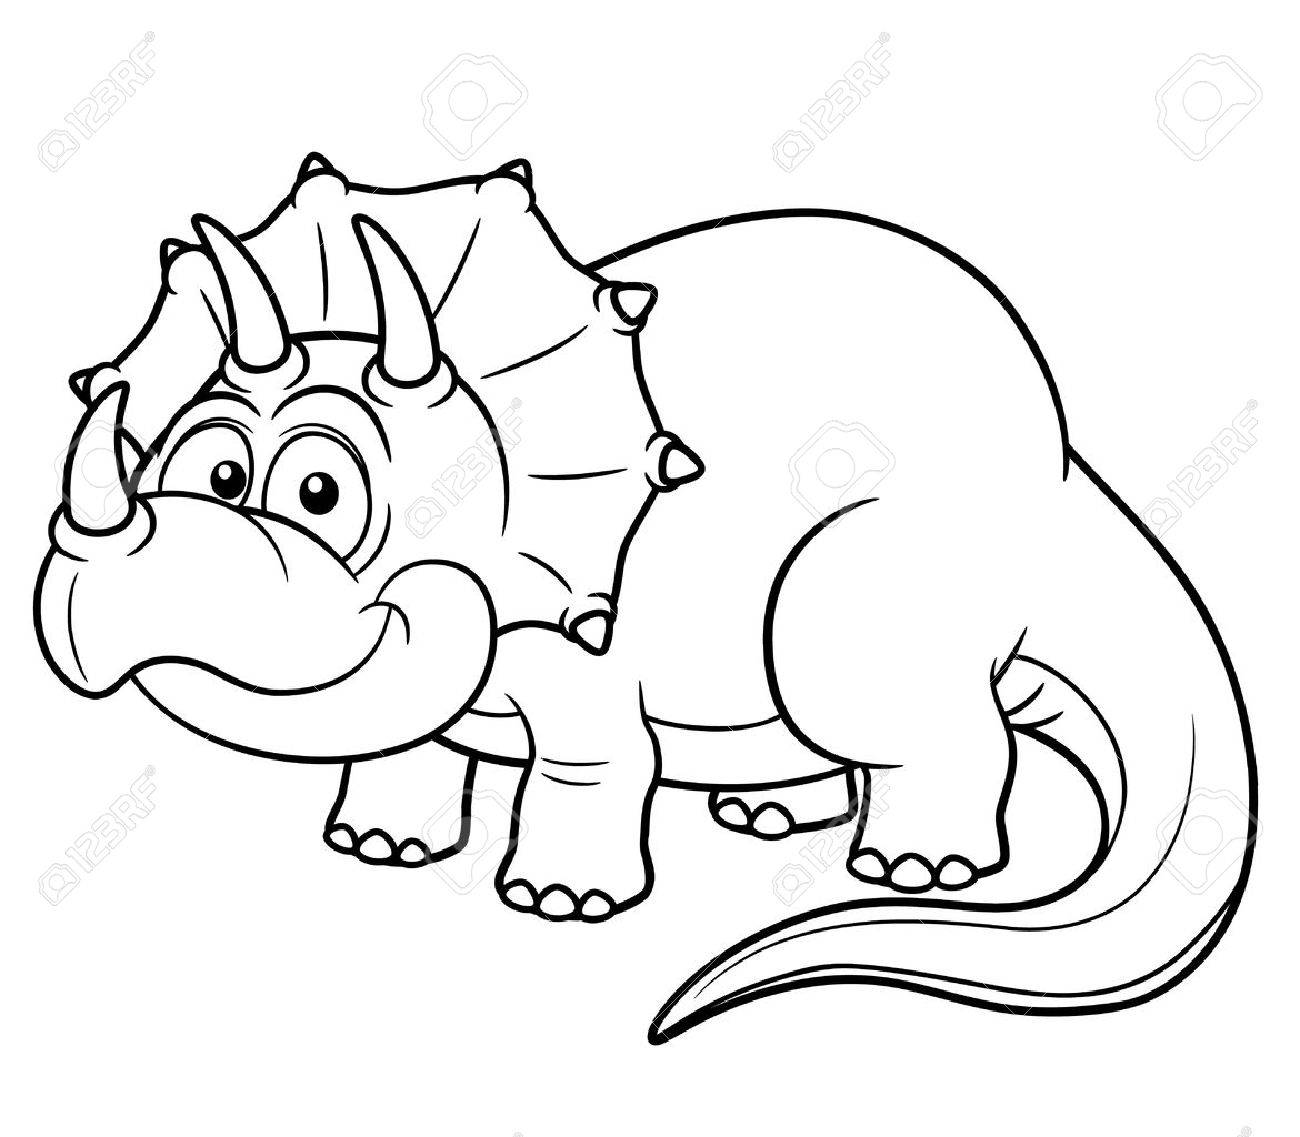 vector illustration of cartoon dinosaur coloring book stock vector 18093392 - Dinosaur Coloring Books